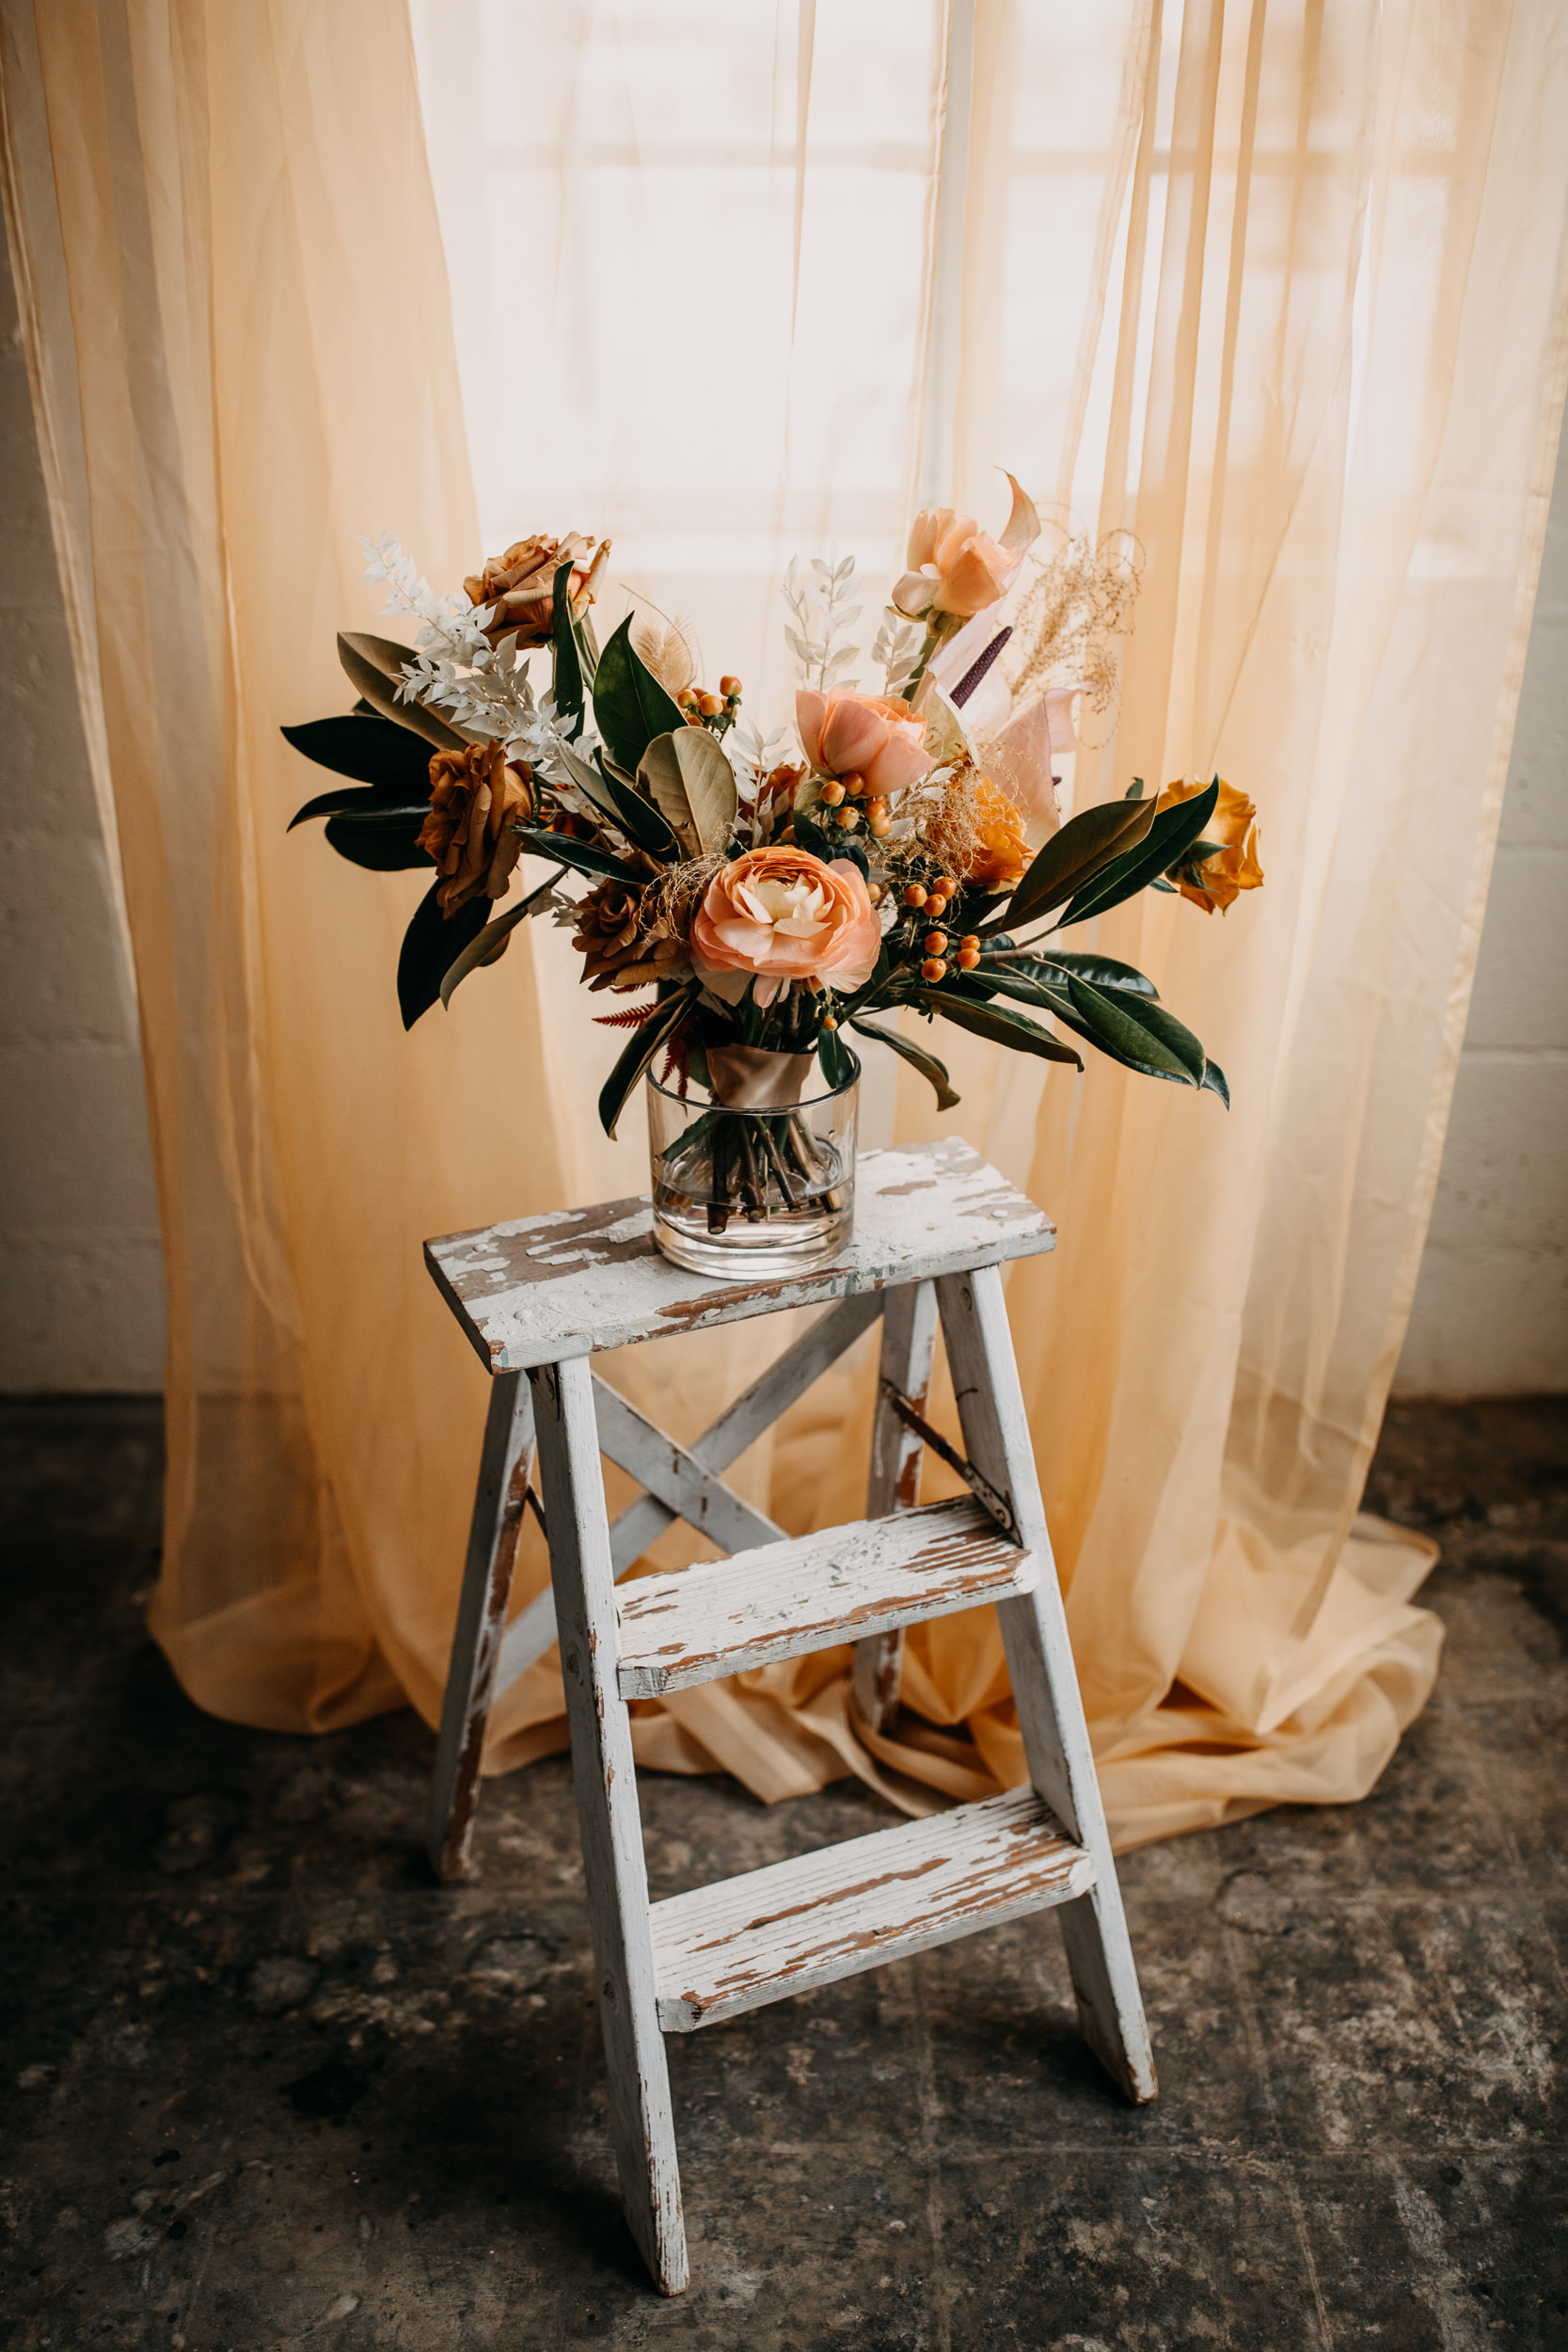 vintage wedding decor. distressed ladder. wedding with ladder. reception with ladder. vintage rentals. vintage wedding rentals. queen city blooms. beautiful blooms. ladders with bouquets. spring wedding. summer wedding. fall wedding. winter wedding. vintage wedding. natural wedding decor.